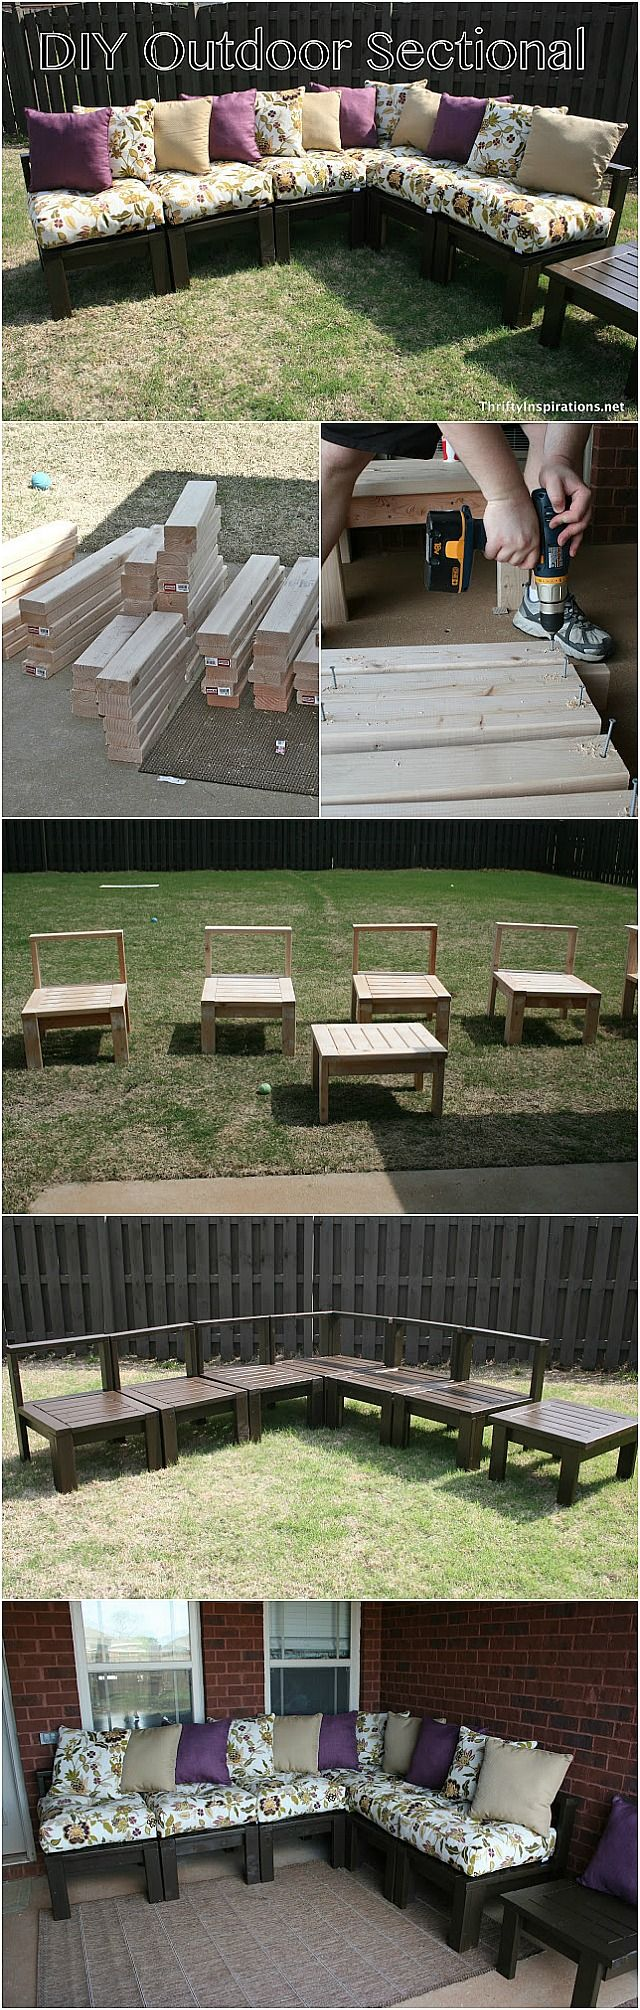 Homemade outdoor furniture ideas - Diy Outdoor Sectional Backyard Furniturepallet Furniturefurniture Ideassectional